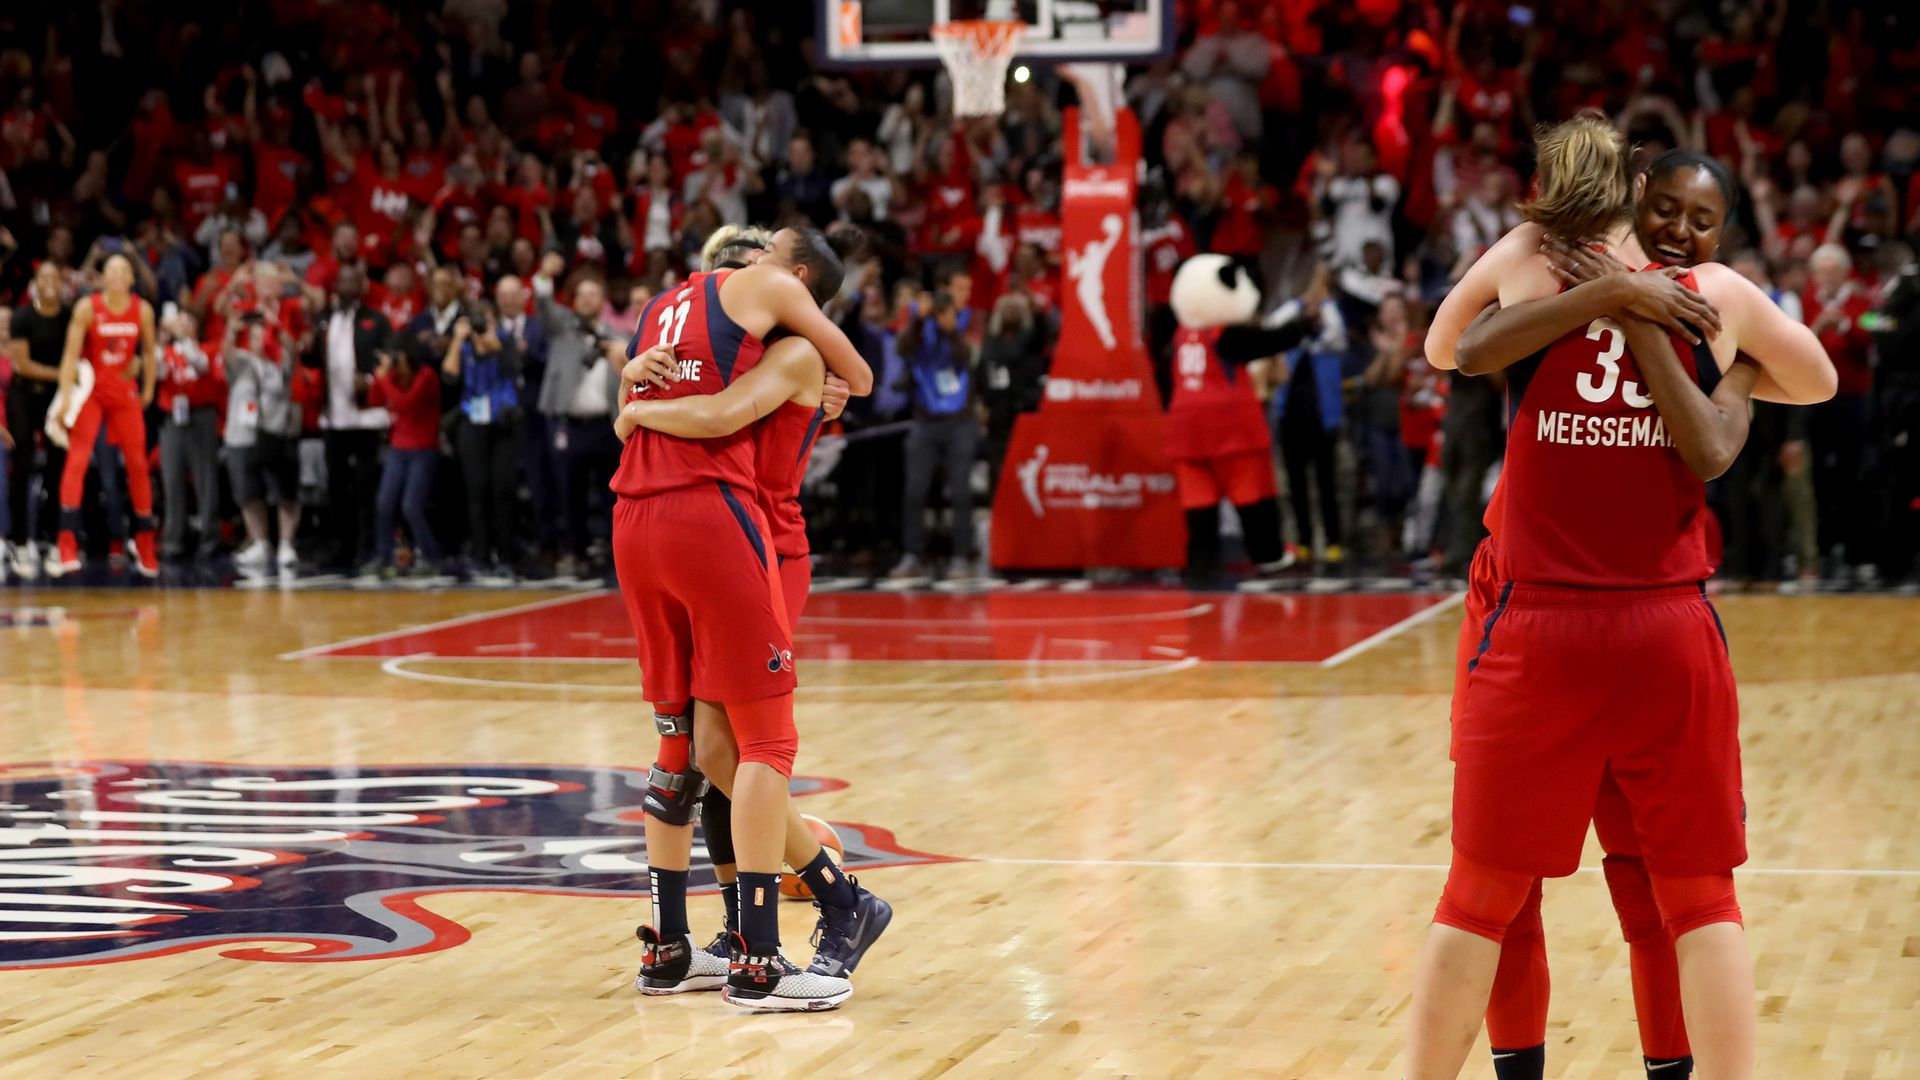 Mystics players hugging